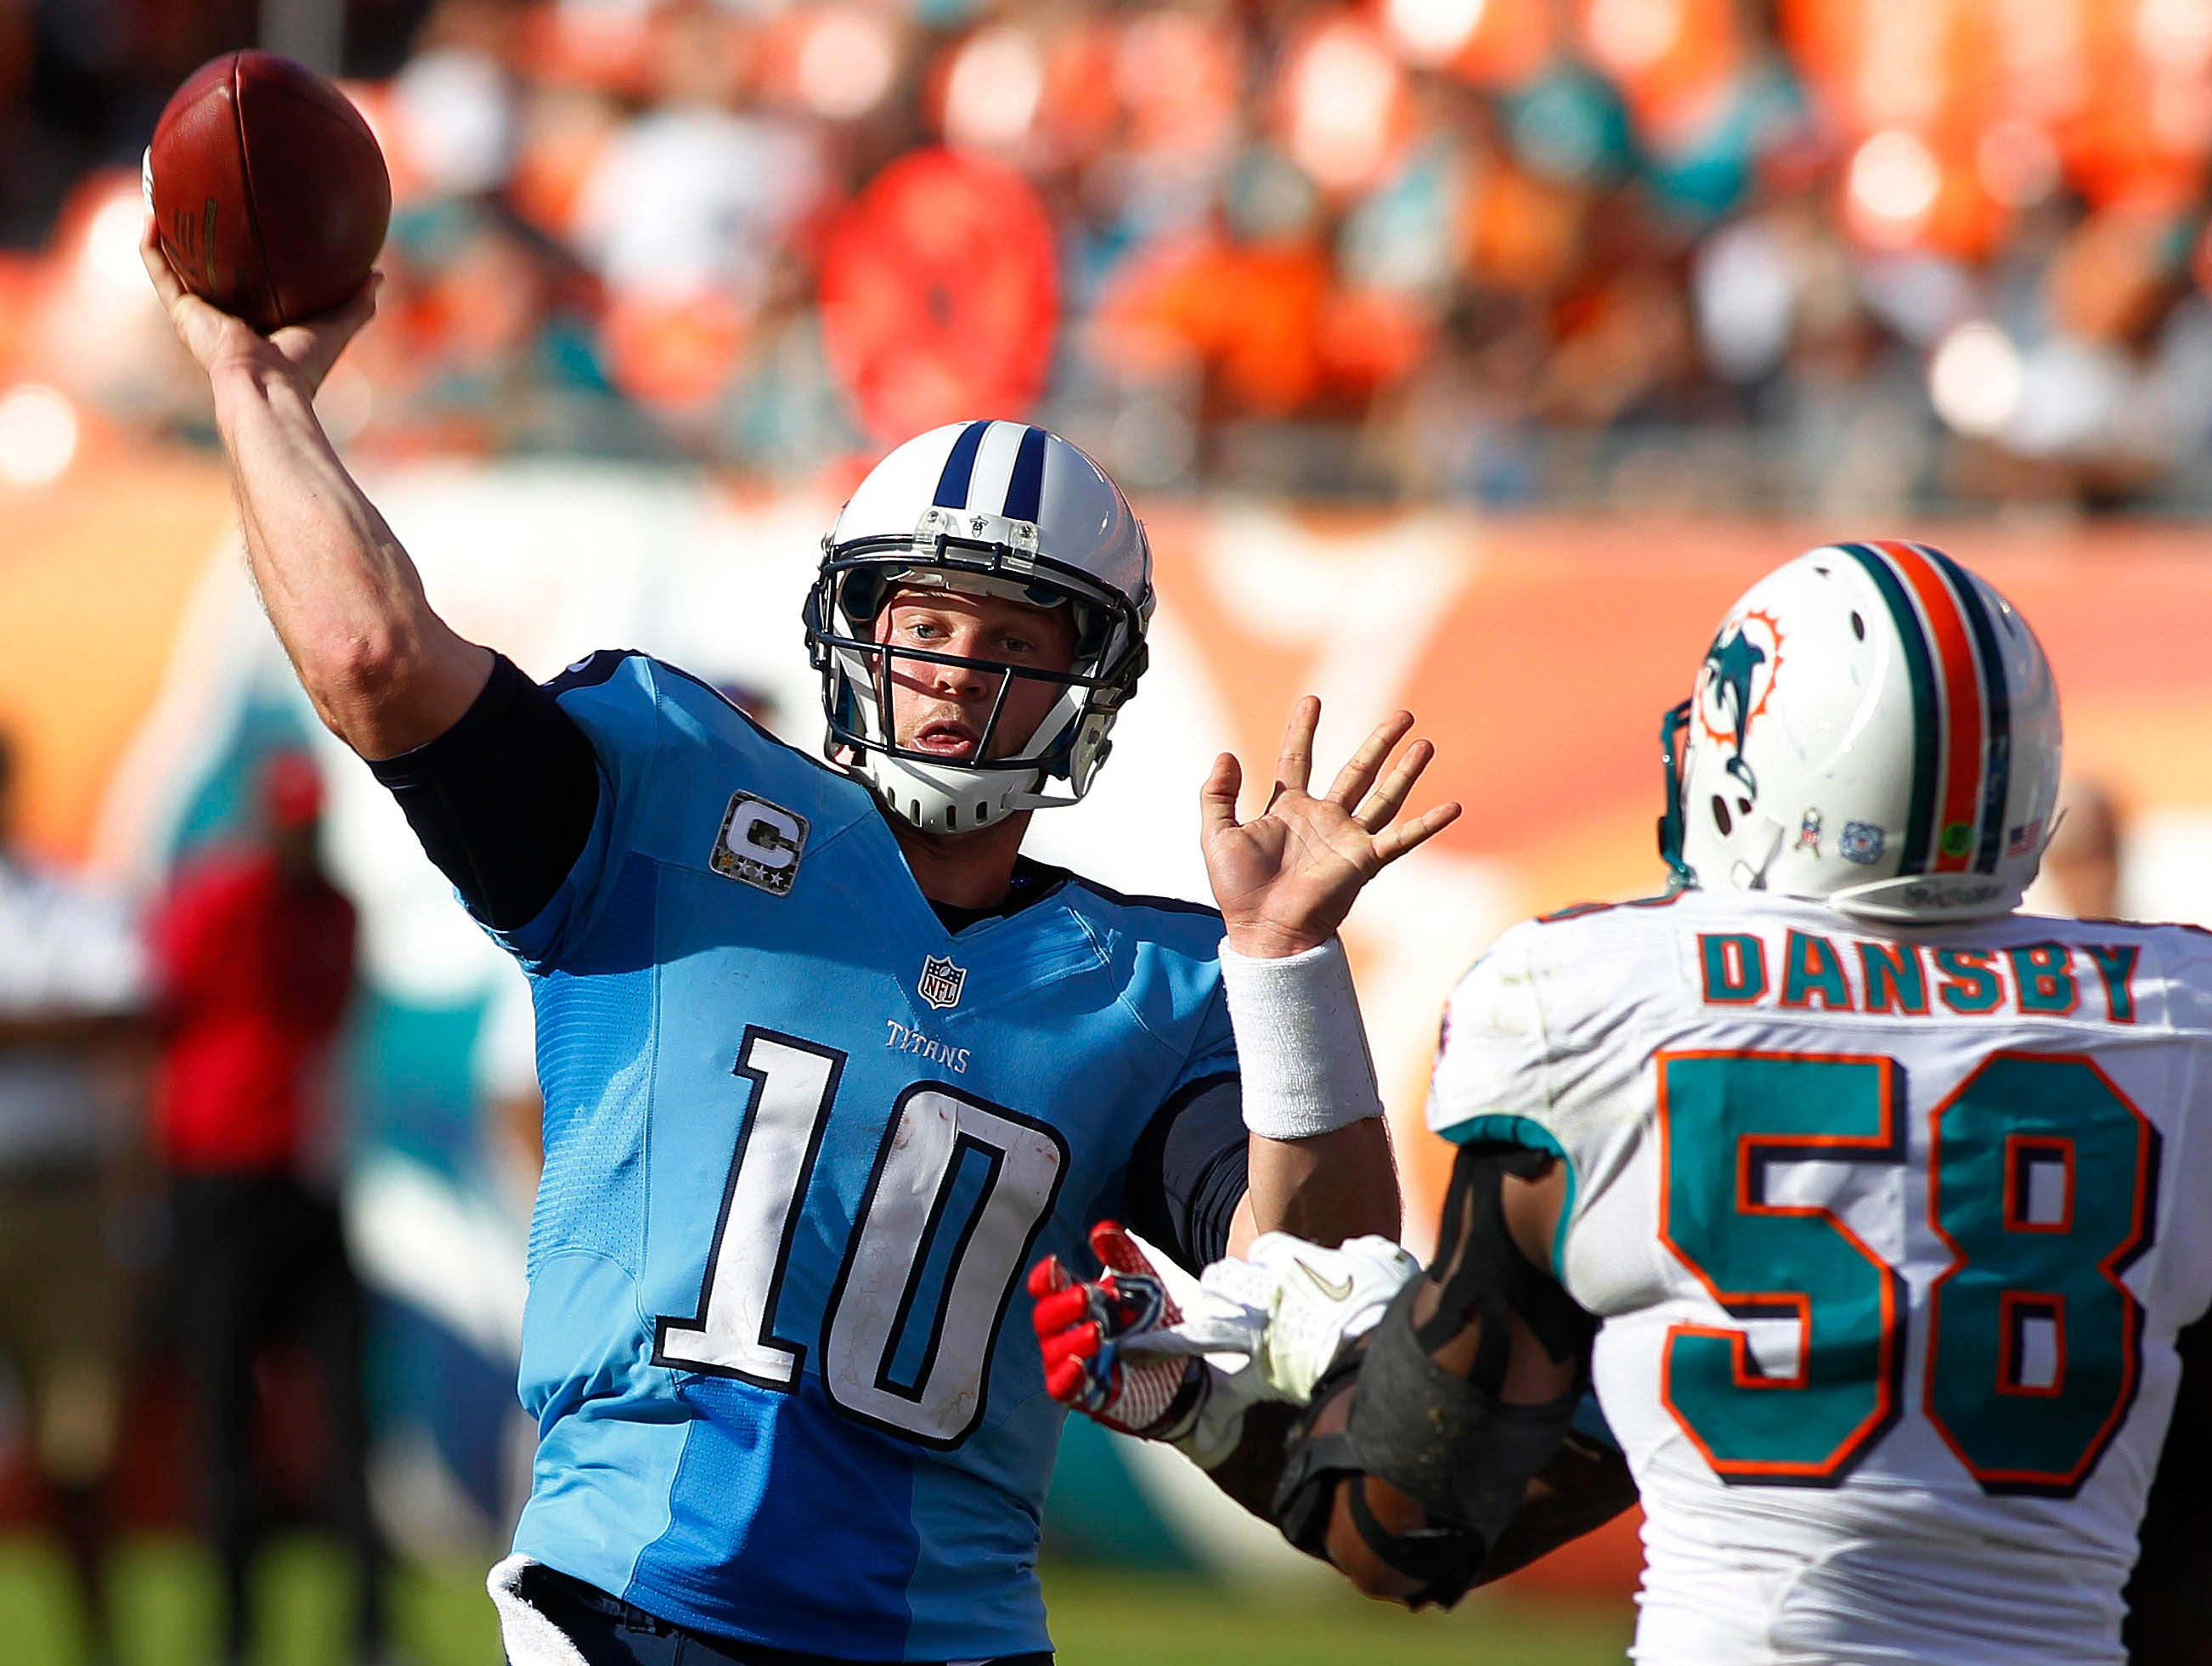 18. Jake Locker, Tennessee Titans